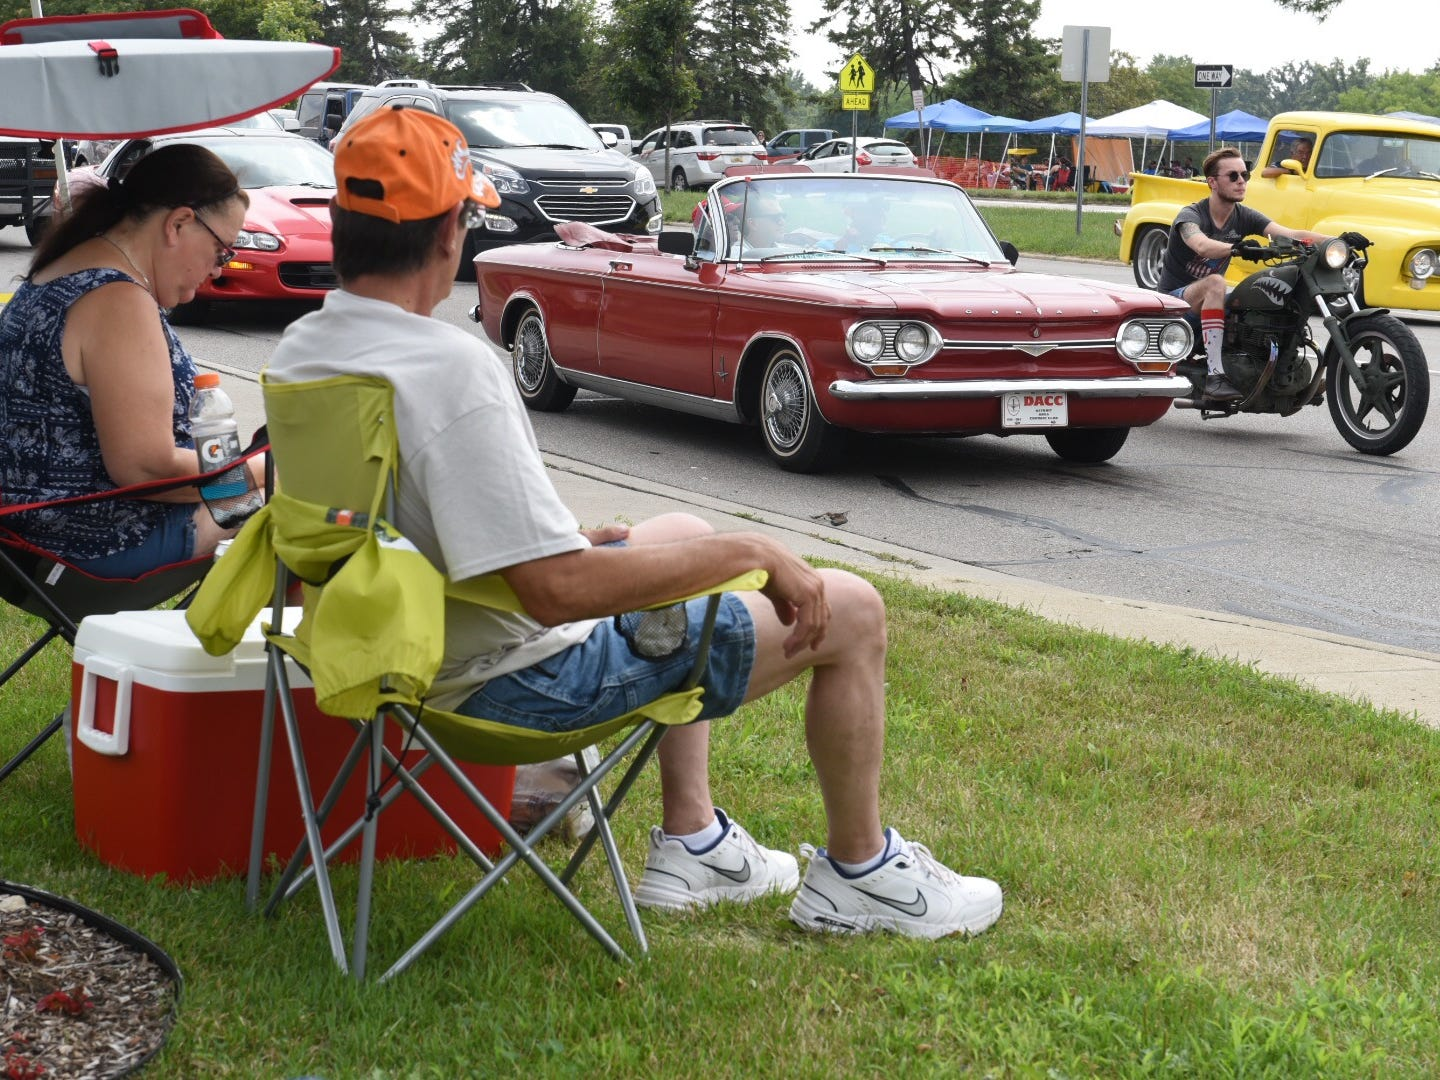 Spectators enjoy watching the classic cars traveling down Woodward Avenue in Royal Oak Saturday.